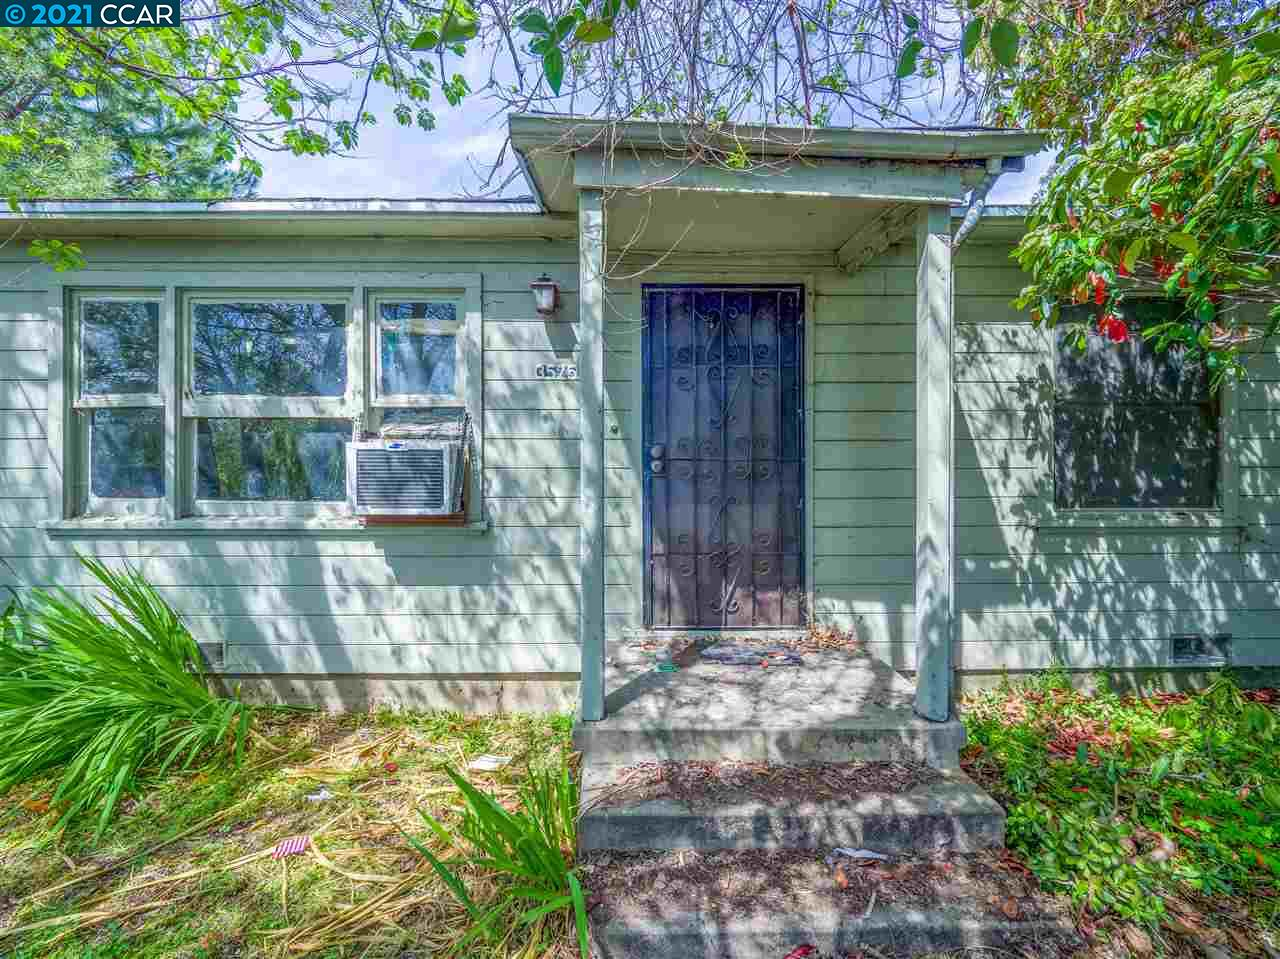 Incredibly rare opportunity in one of Concord's most convenient locations! Bring your contractor and your vision to this 2 bedroom 1 bath with detached garage on over a 1/2 acre lot! Tons of possibilities, build your dream home, explore development options or create a multi family compound all within walking distance to BART, freeways, Starbucks, shopping, schools and all the potential development coming to Concord. This is a once in a lifetime opportunity and will go fast!